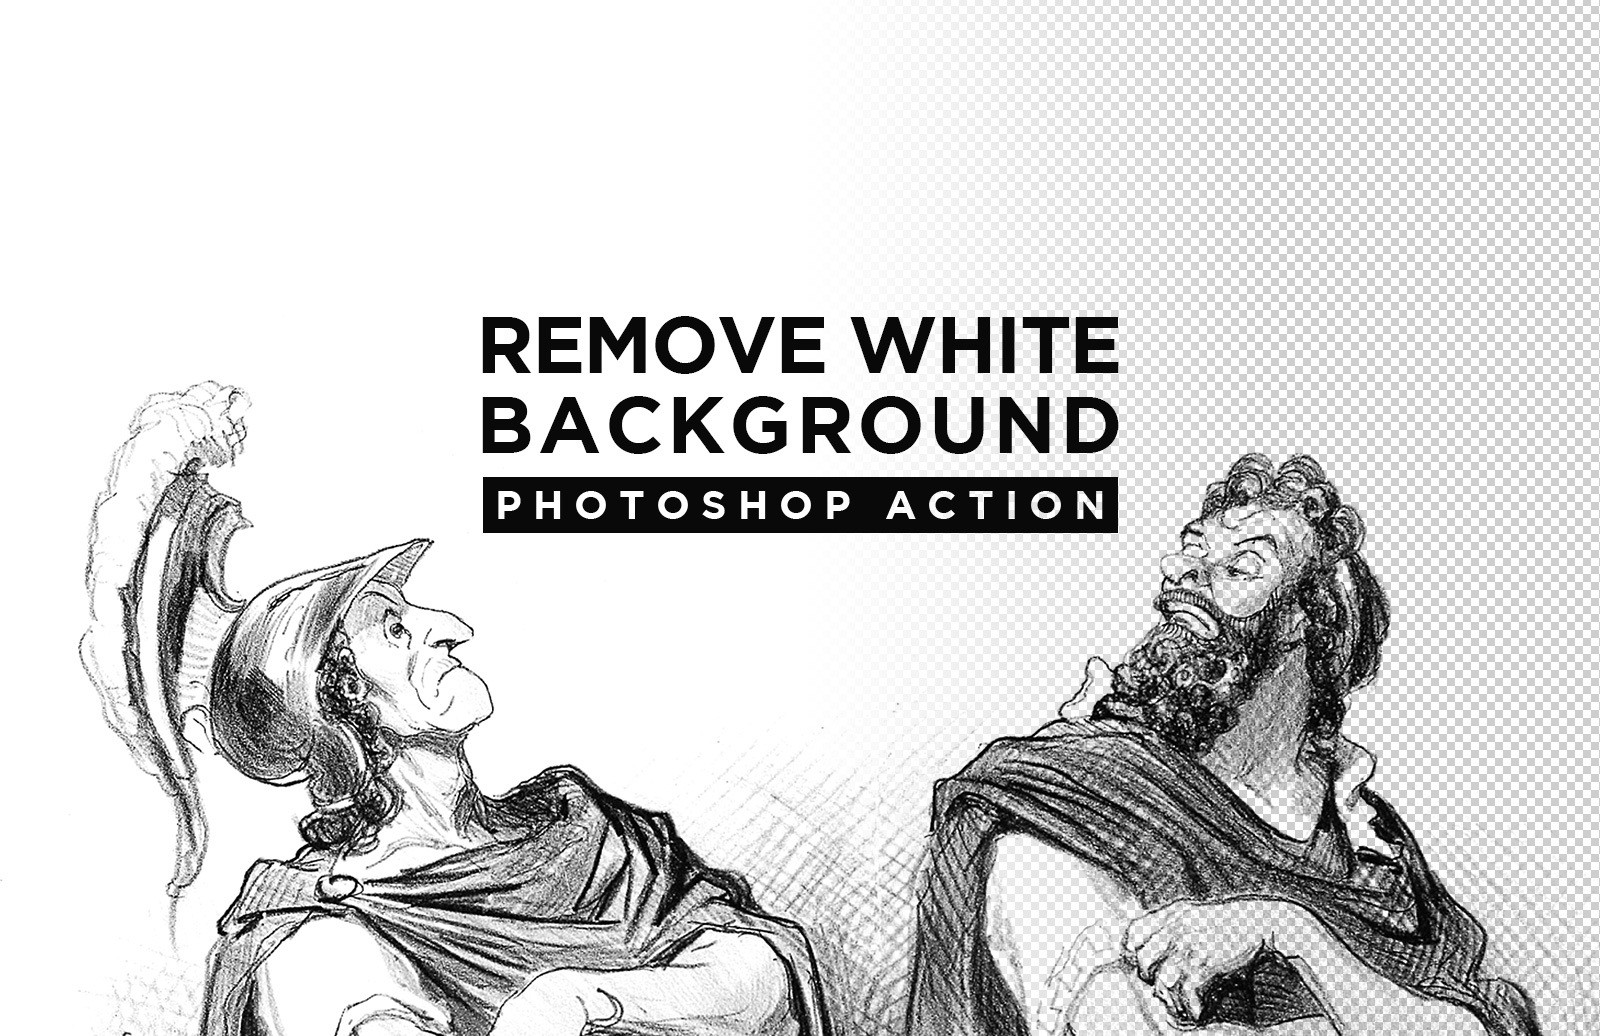 Remove White Background Photoshop Action